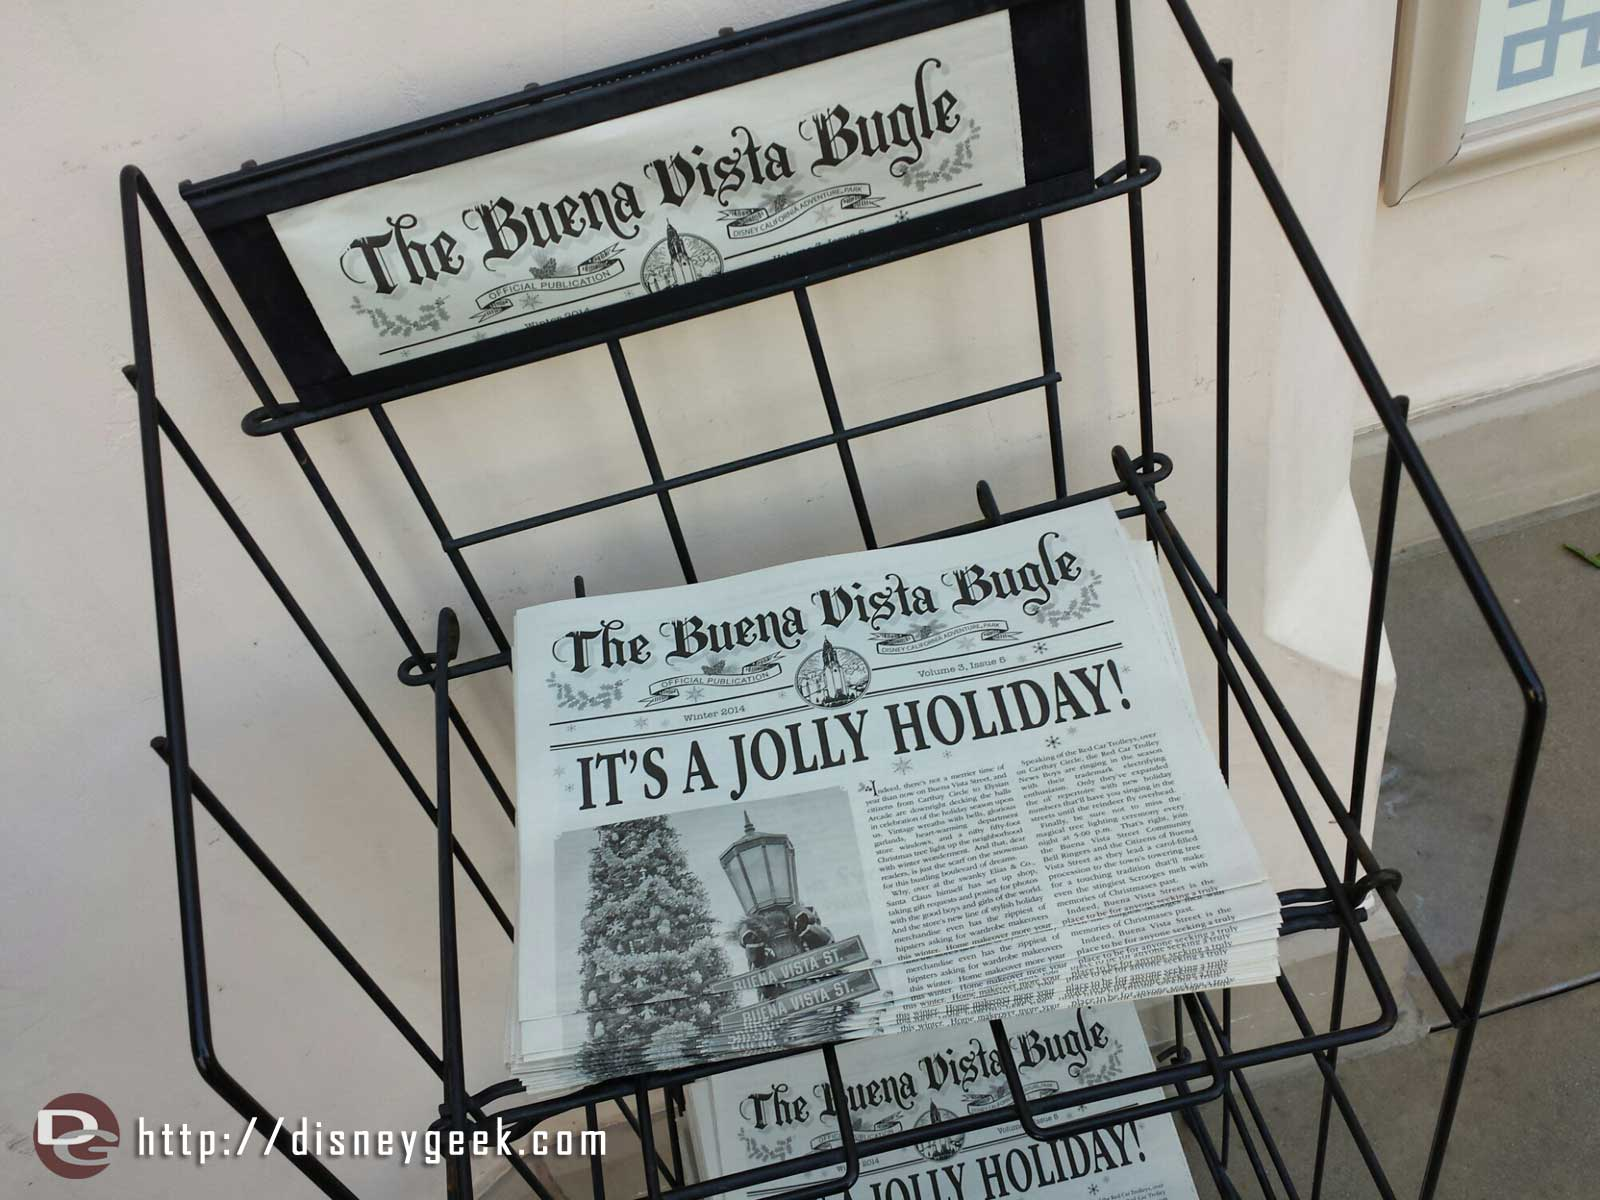 The holiday edition of the Buena Vista Bugle is now on news stands